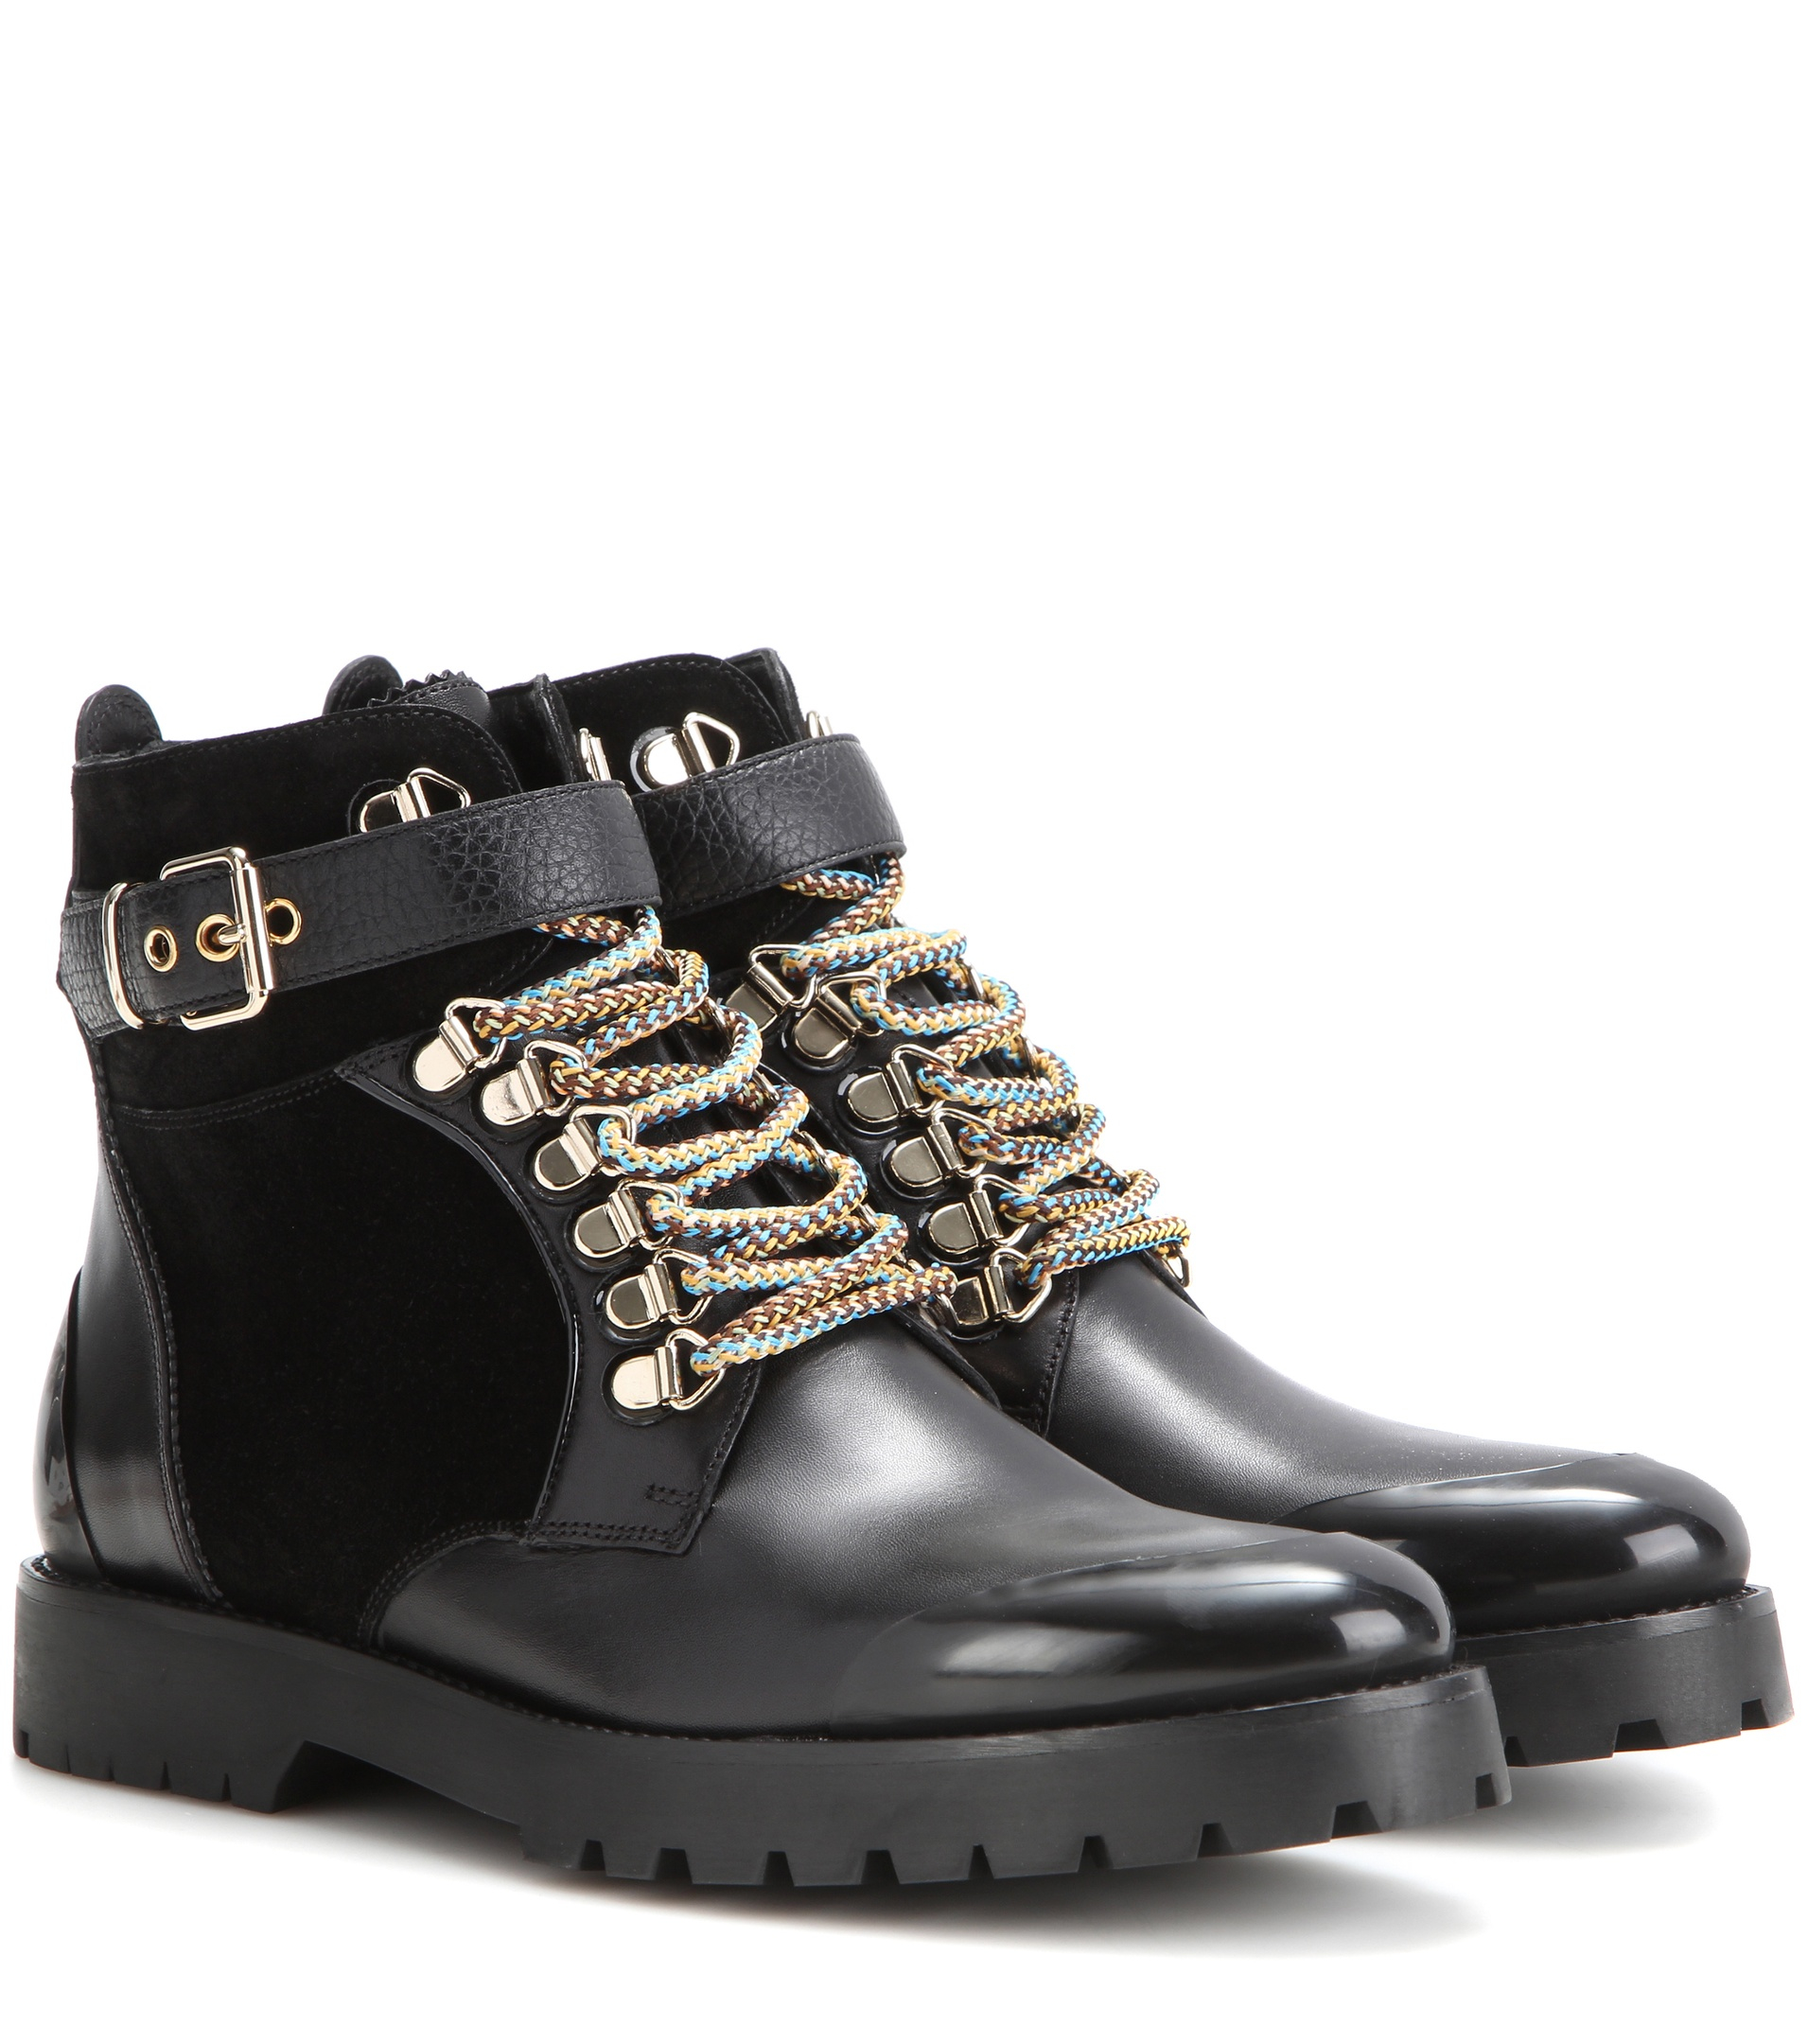 4d086c8eb28 Burberry LF Wolverson Leather Ankle Boots in Black - Lyst